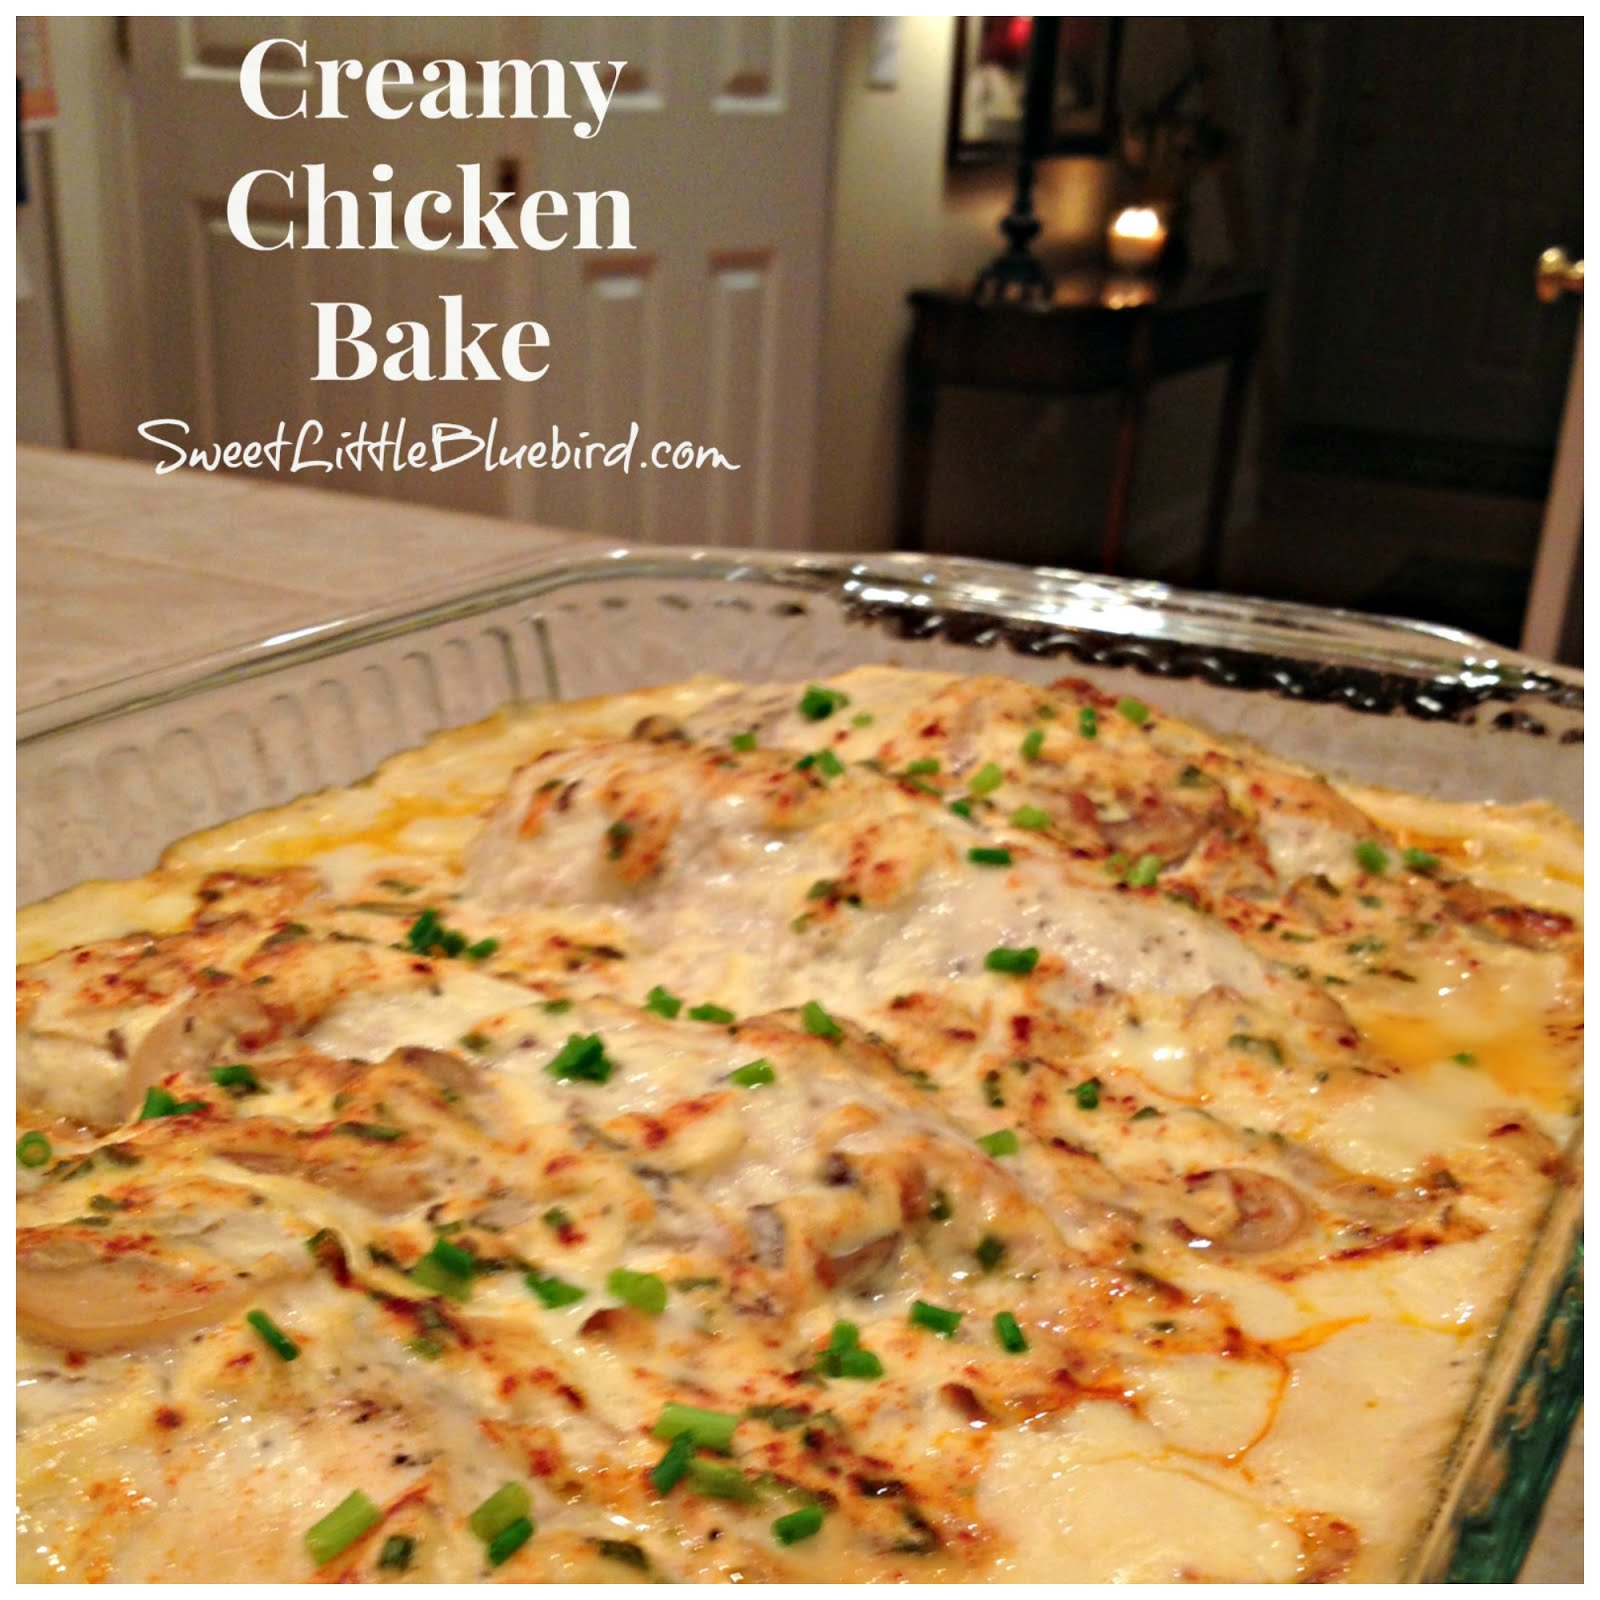 Creamy Chicken Bake